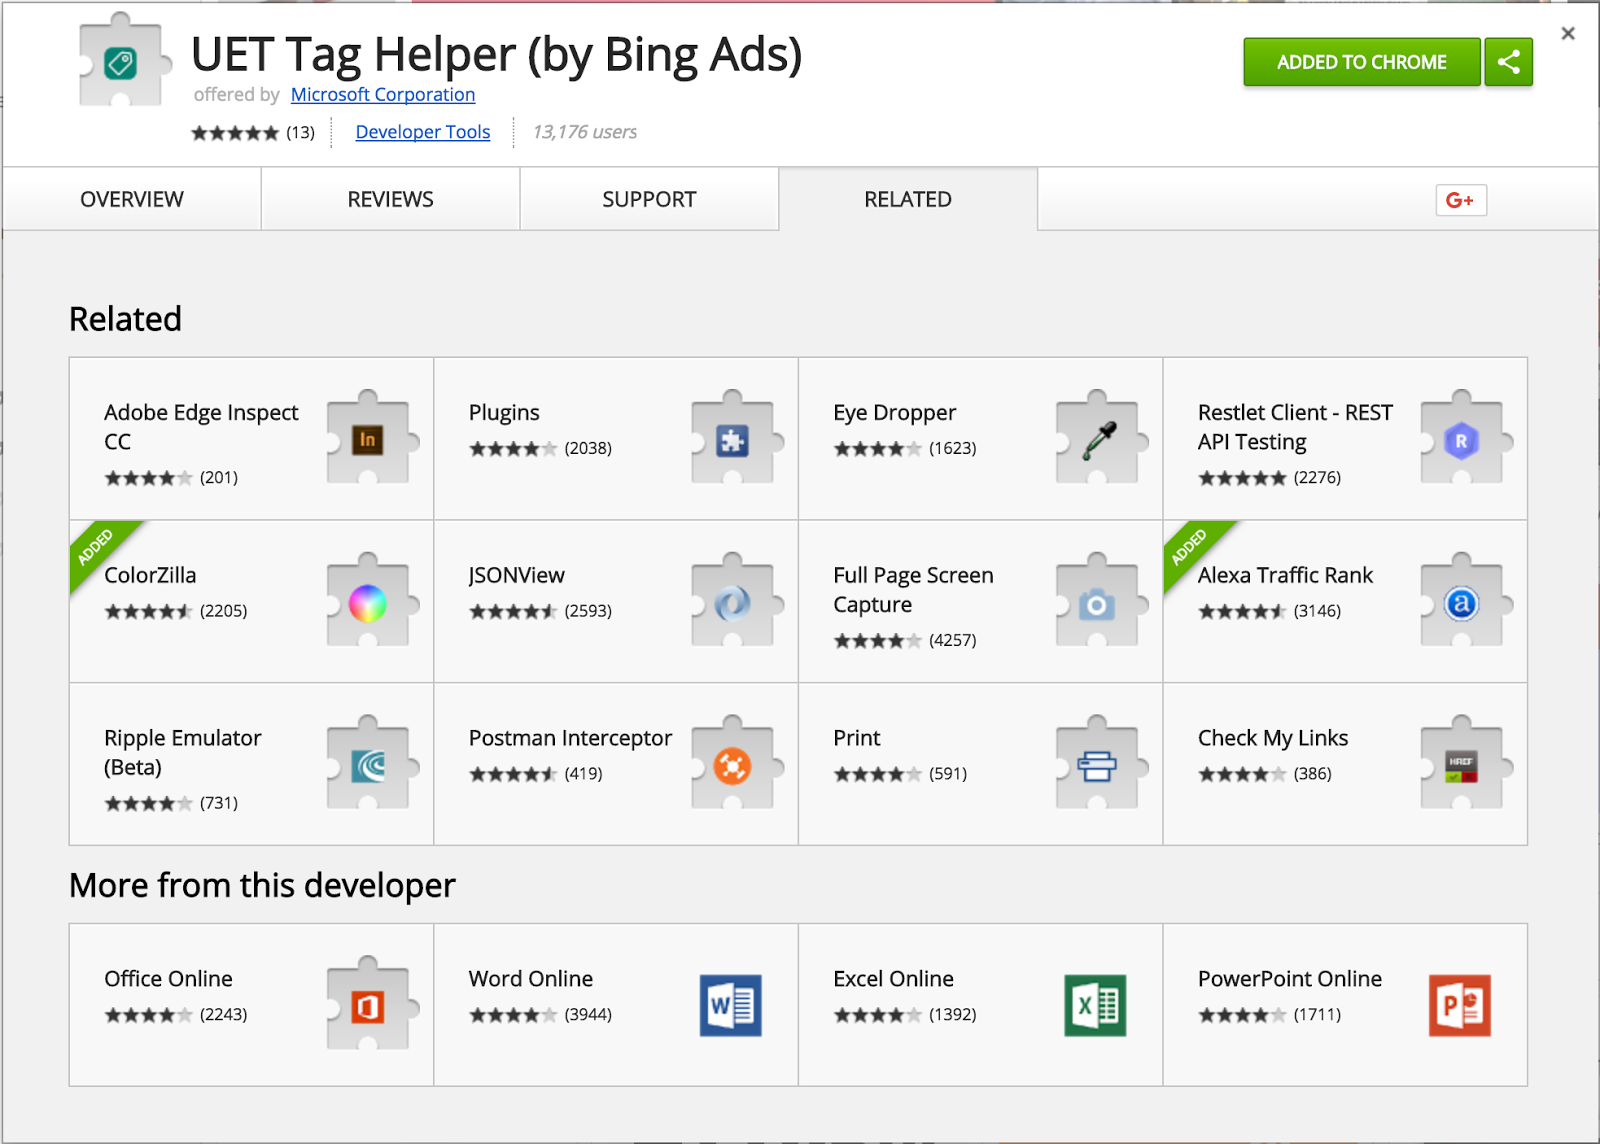 The UET Tag Helper Chrome extension for UET tag verification